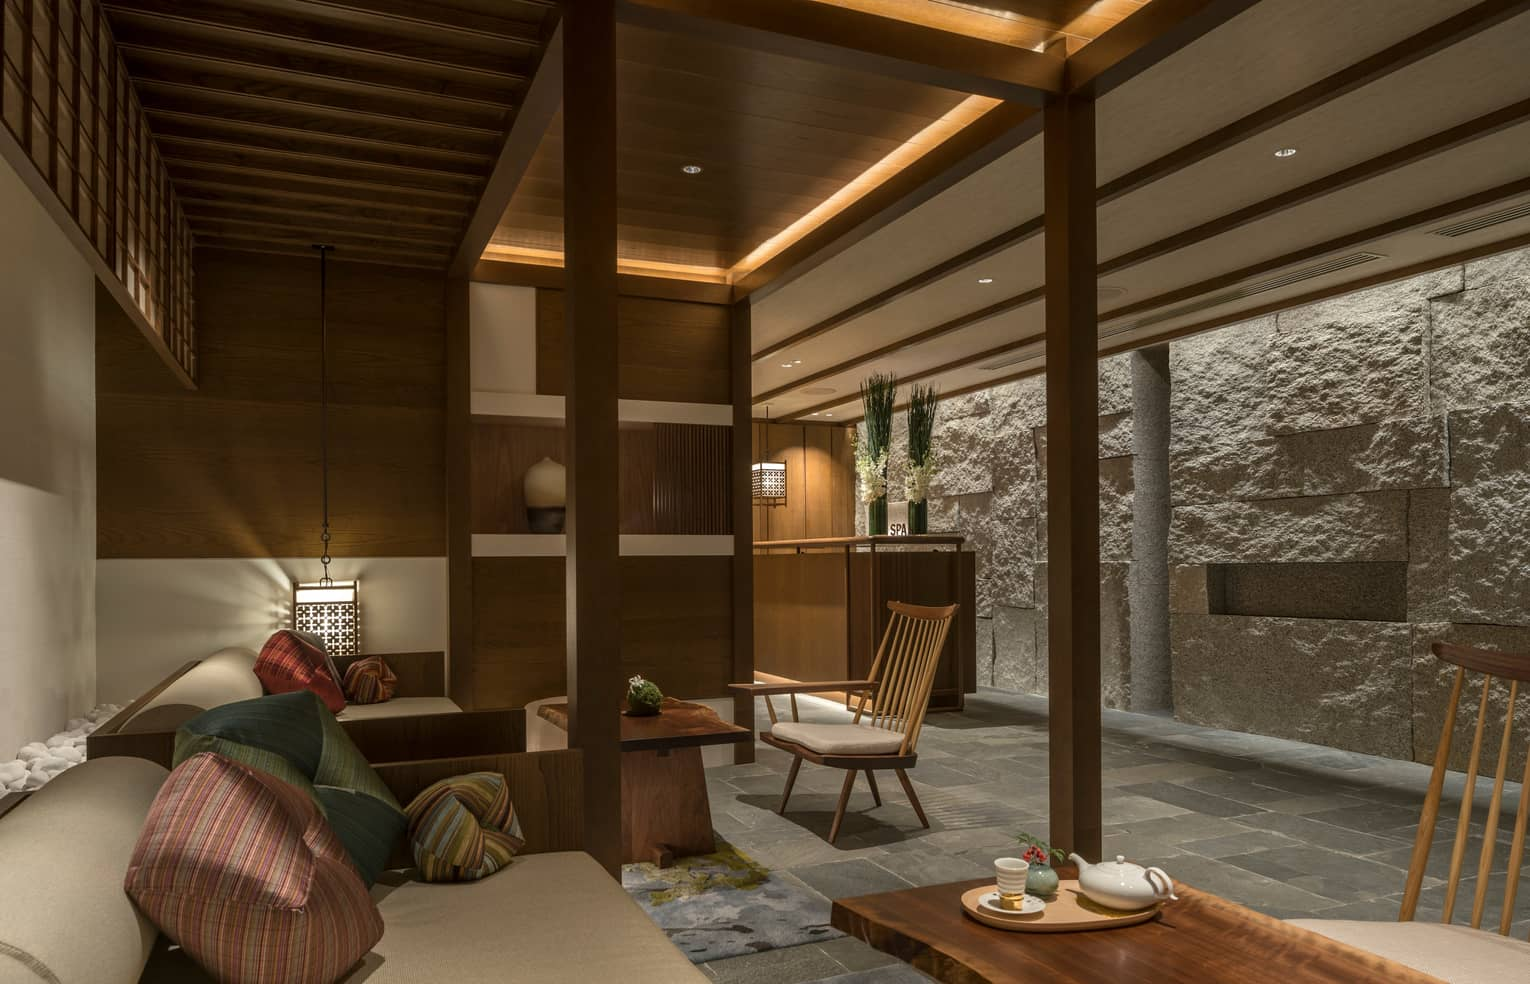 Spa lounge with plush bench, cushions, tea on table, lanterns, rock wall